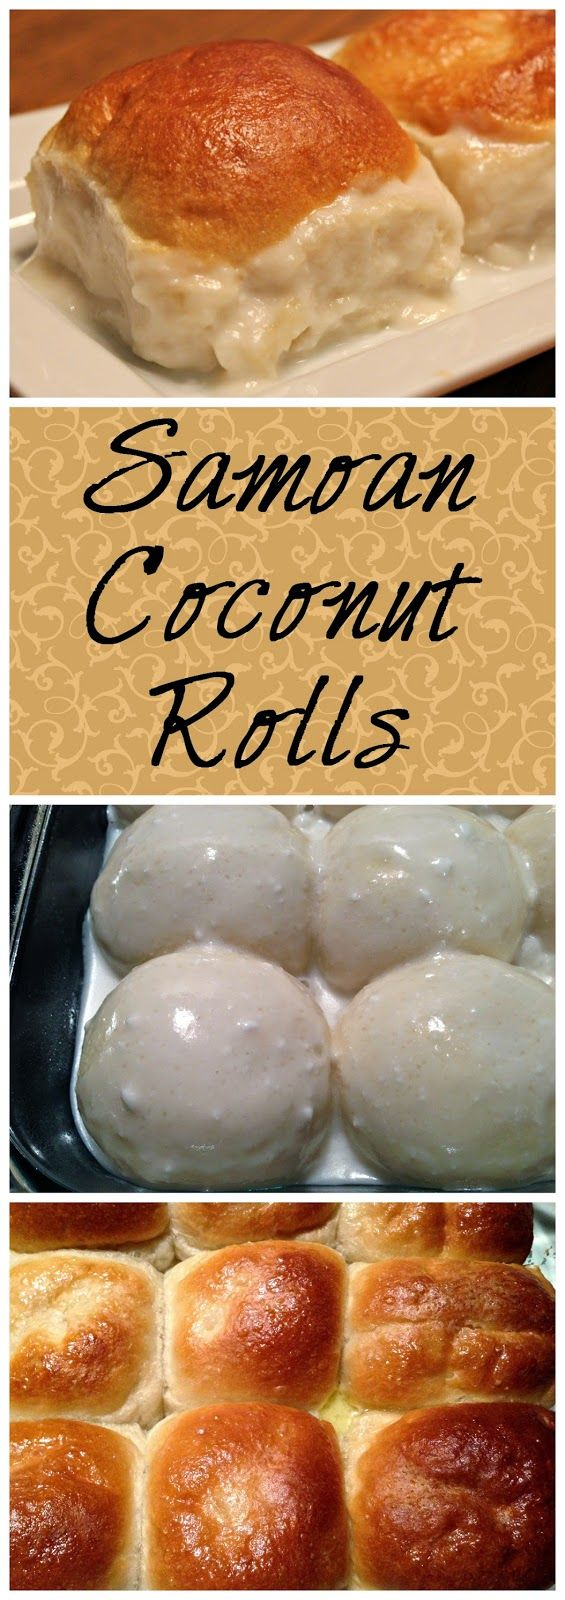 Samoan Coconut Rolls (Pani Popo) | These sweet coconut rolls are absolutely delicious!